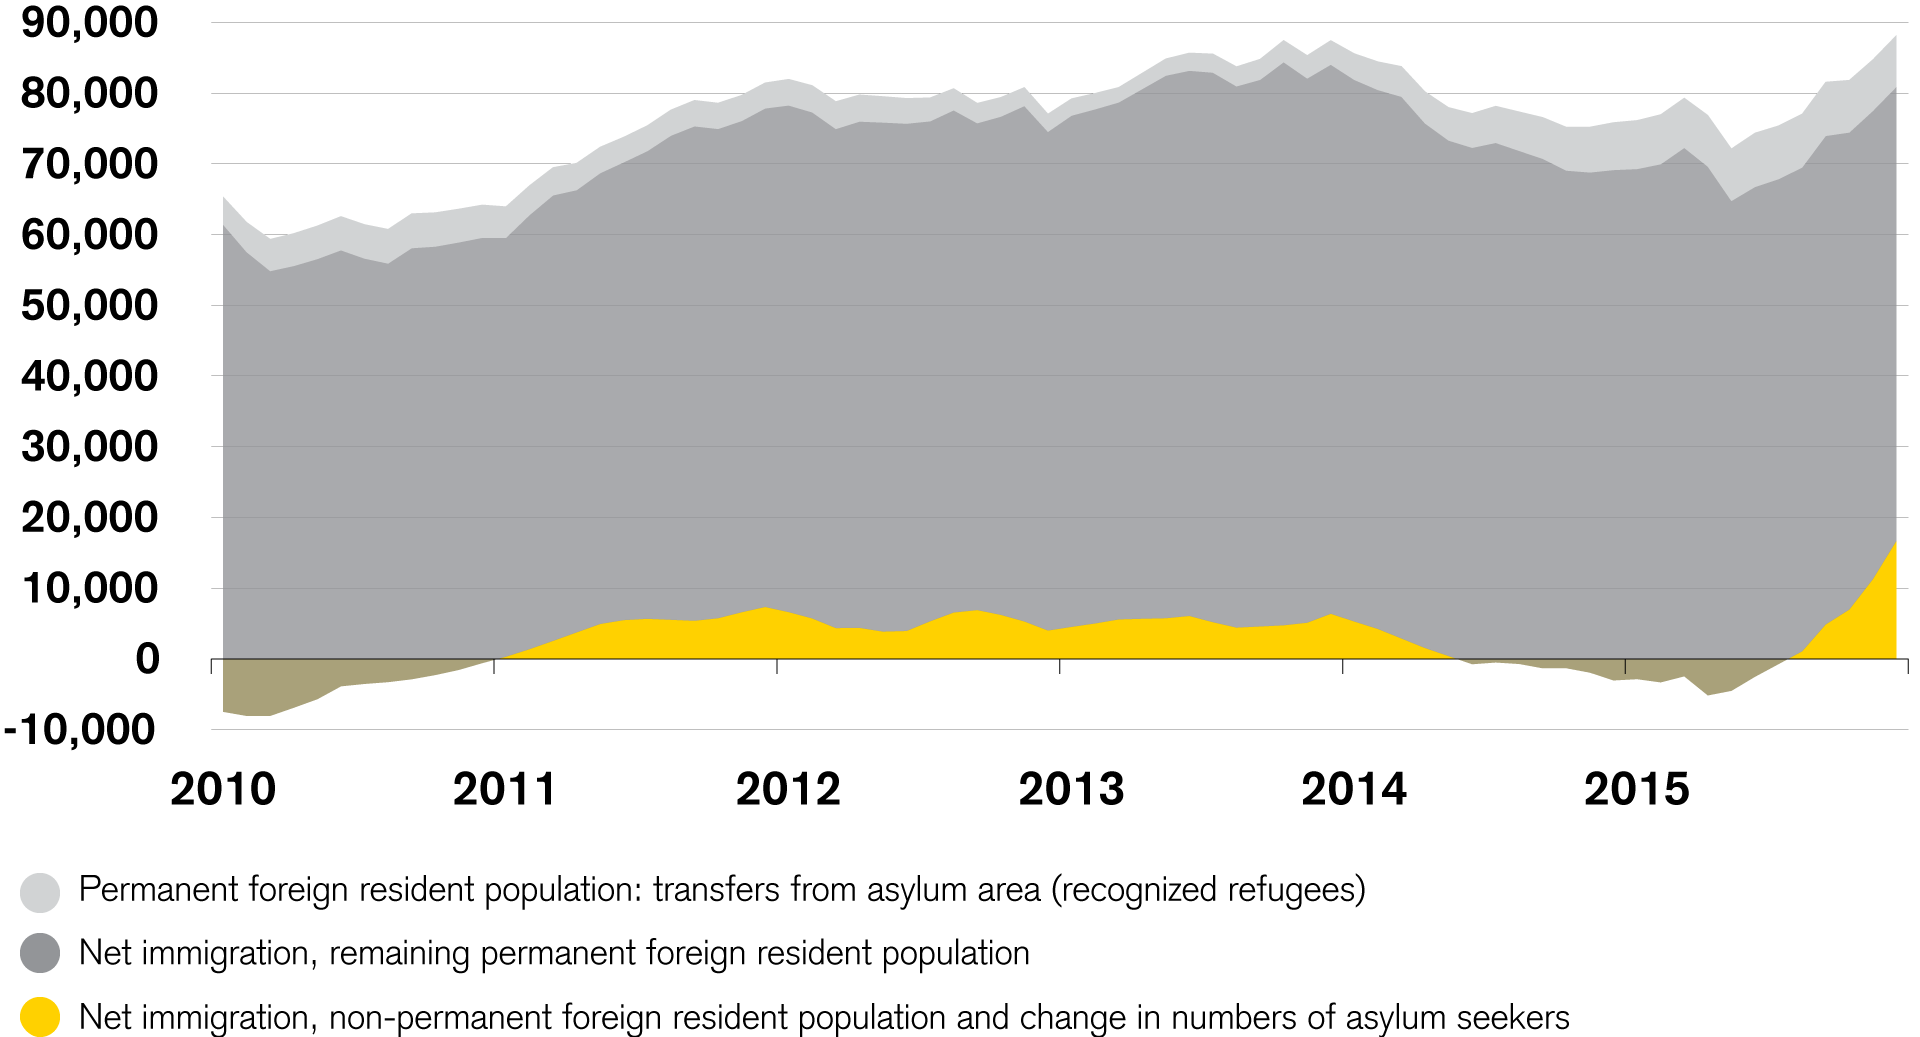 Overall picture of net immigration of foreign residential population